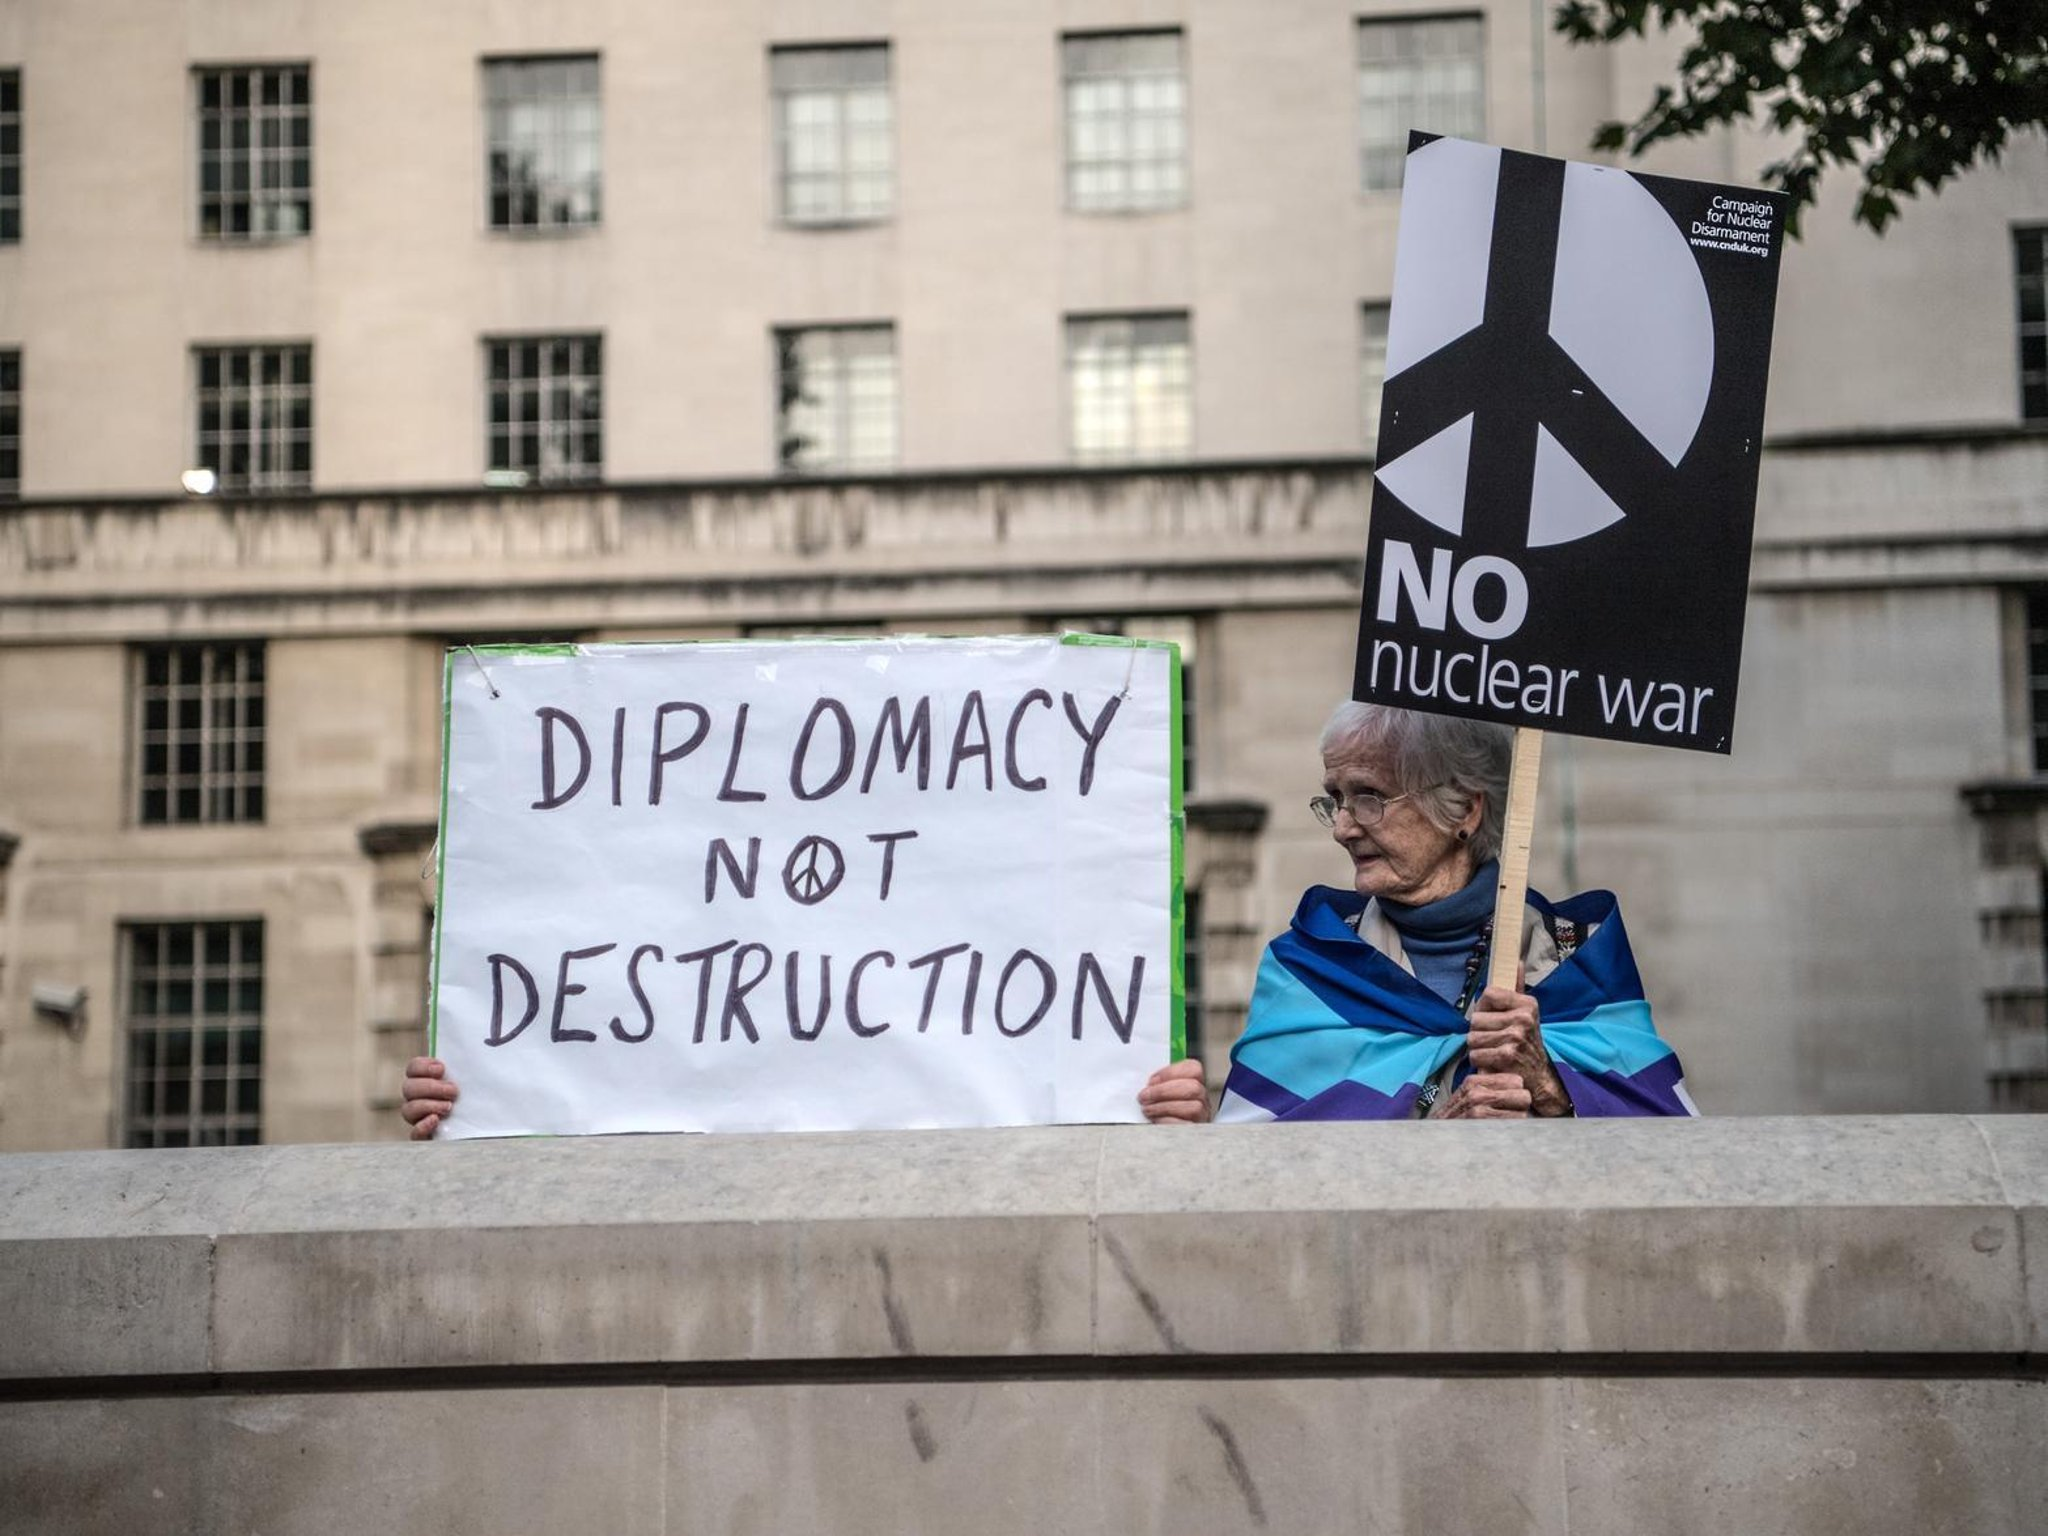 'We need to do away with them': Leeds City Council backs nuclear disarmament motion